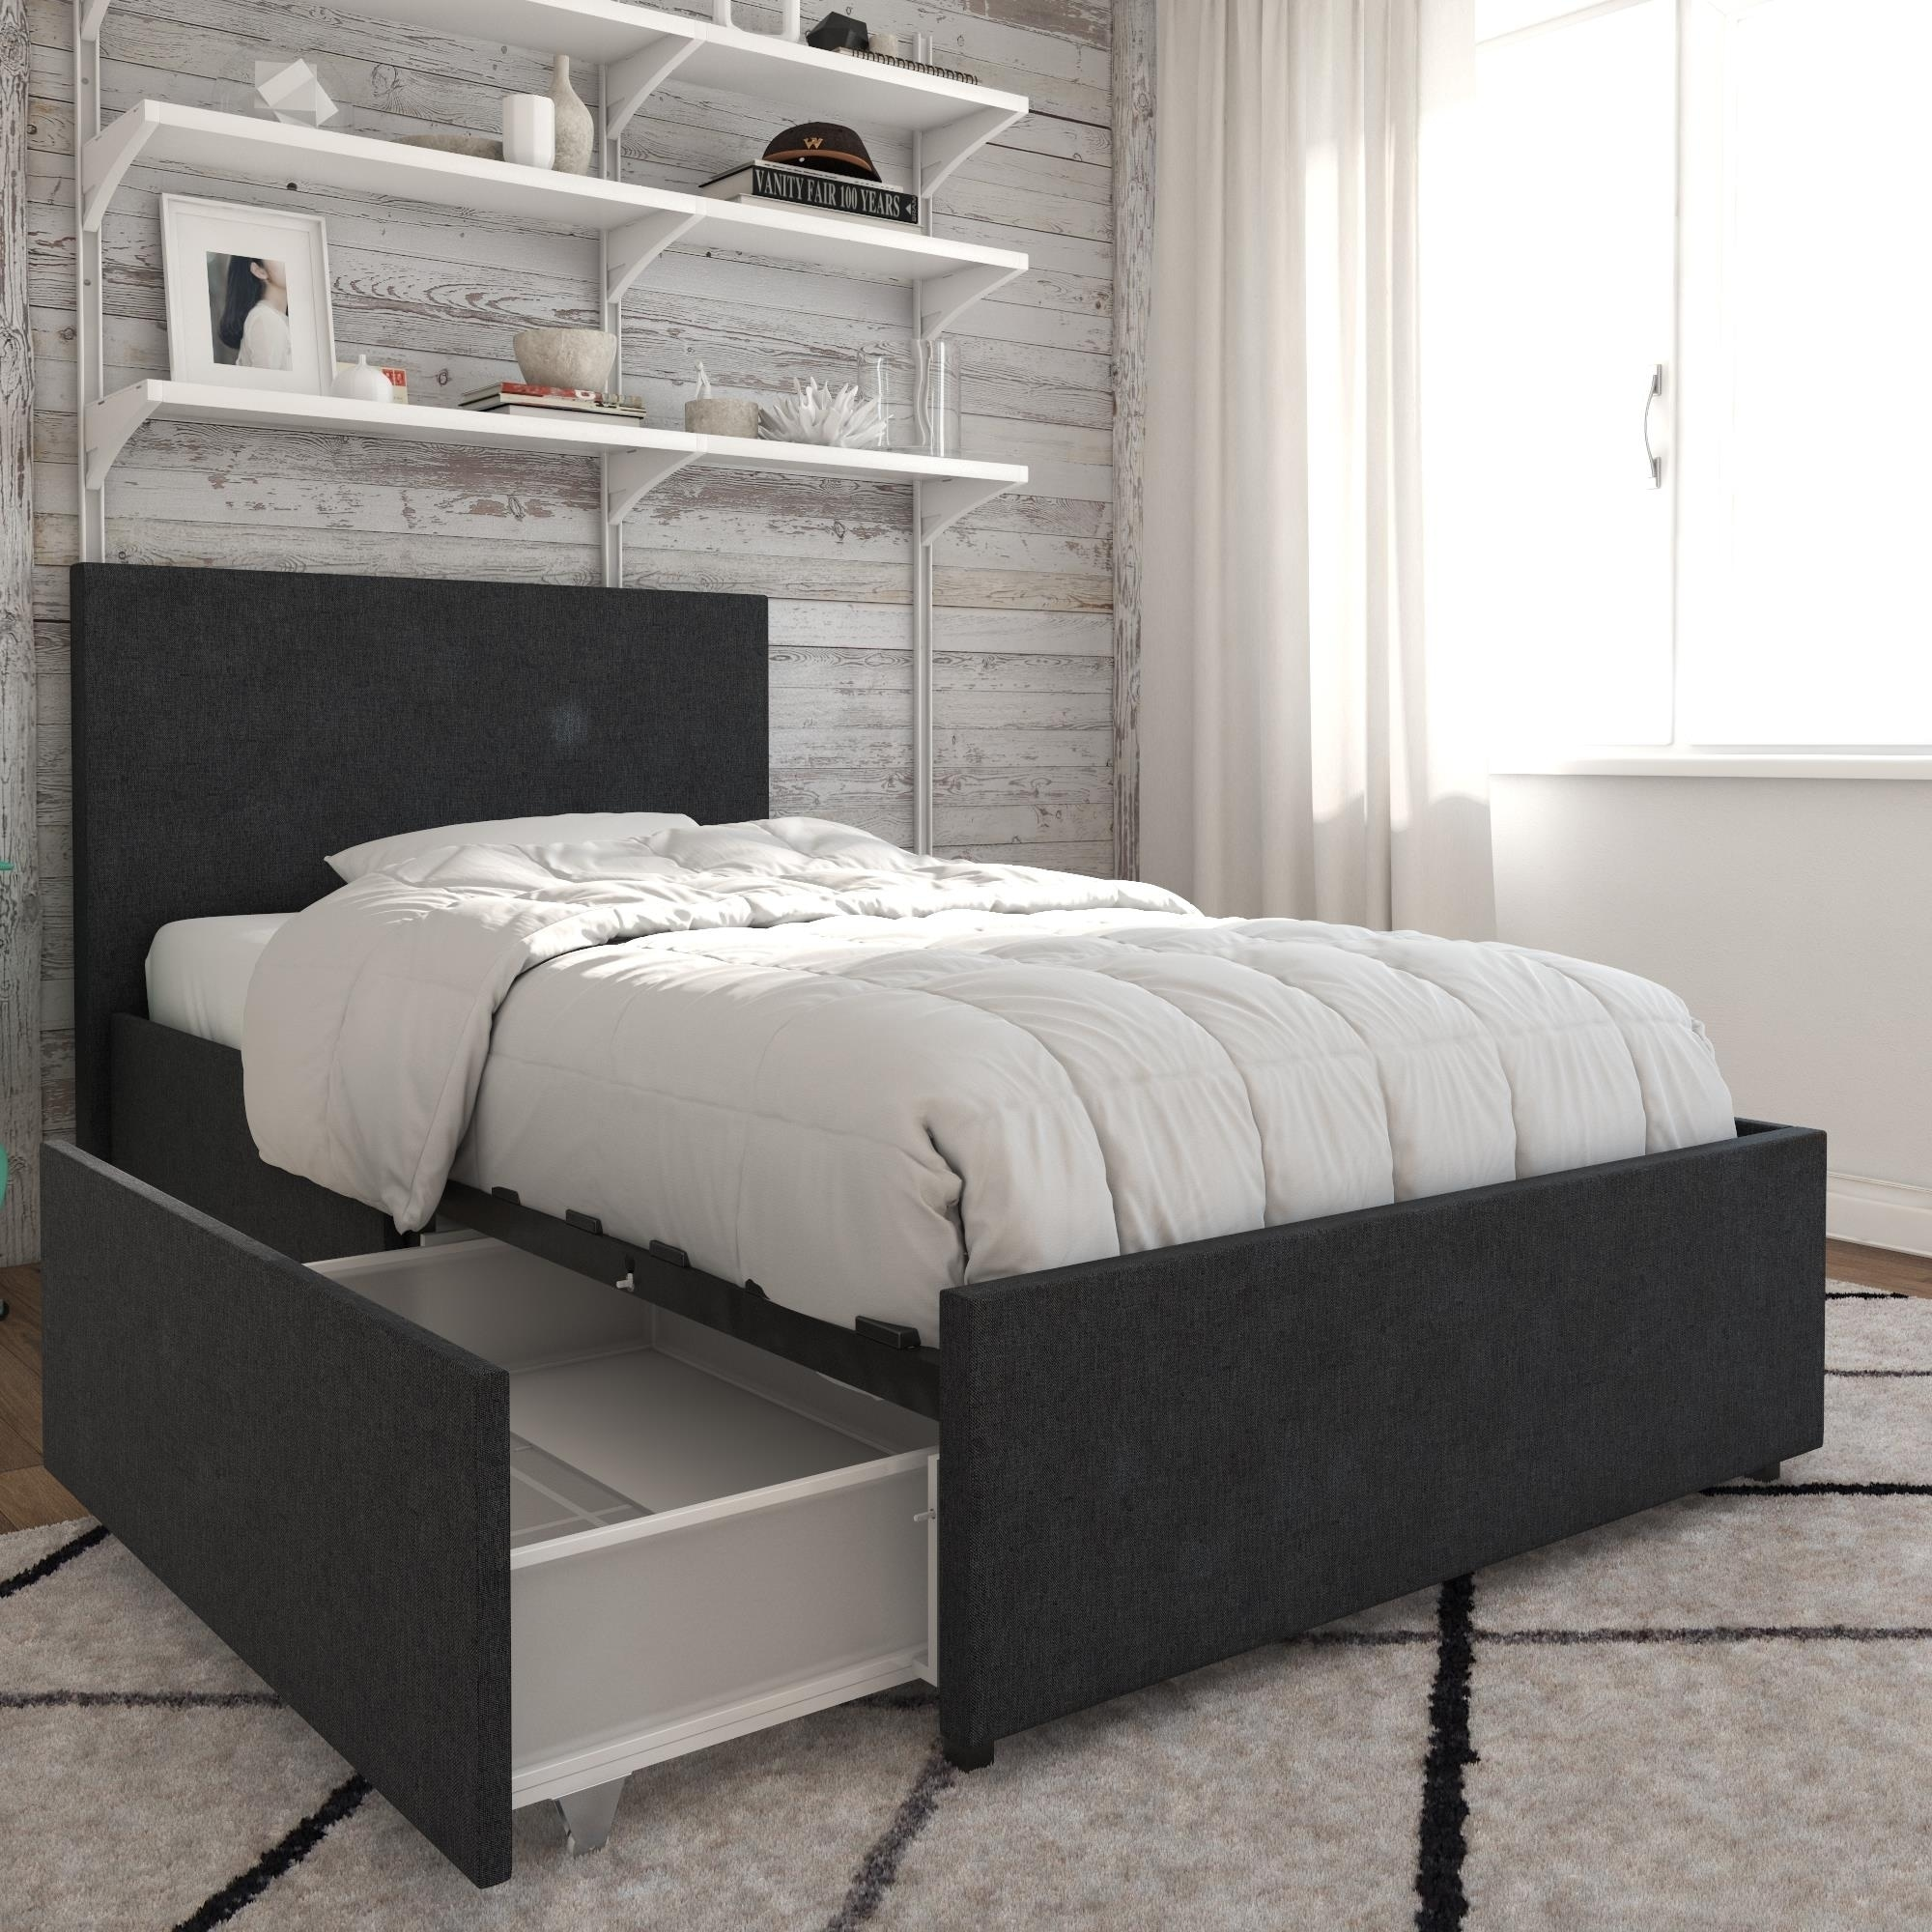 Novogratz Kelly Linen Upholstered Bed With Storage Free Shipping Today 24331726